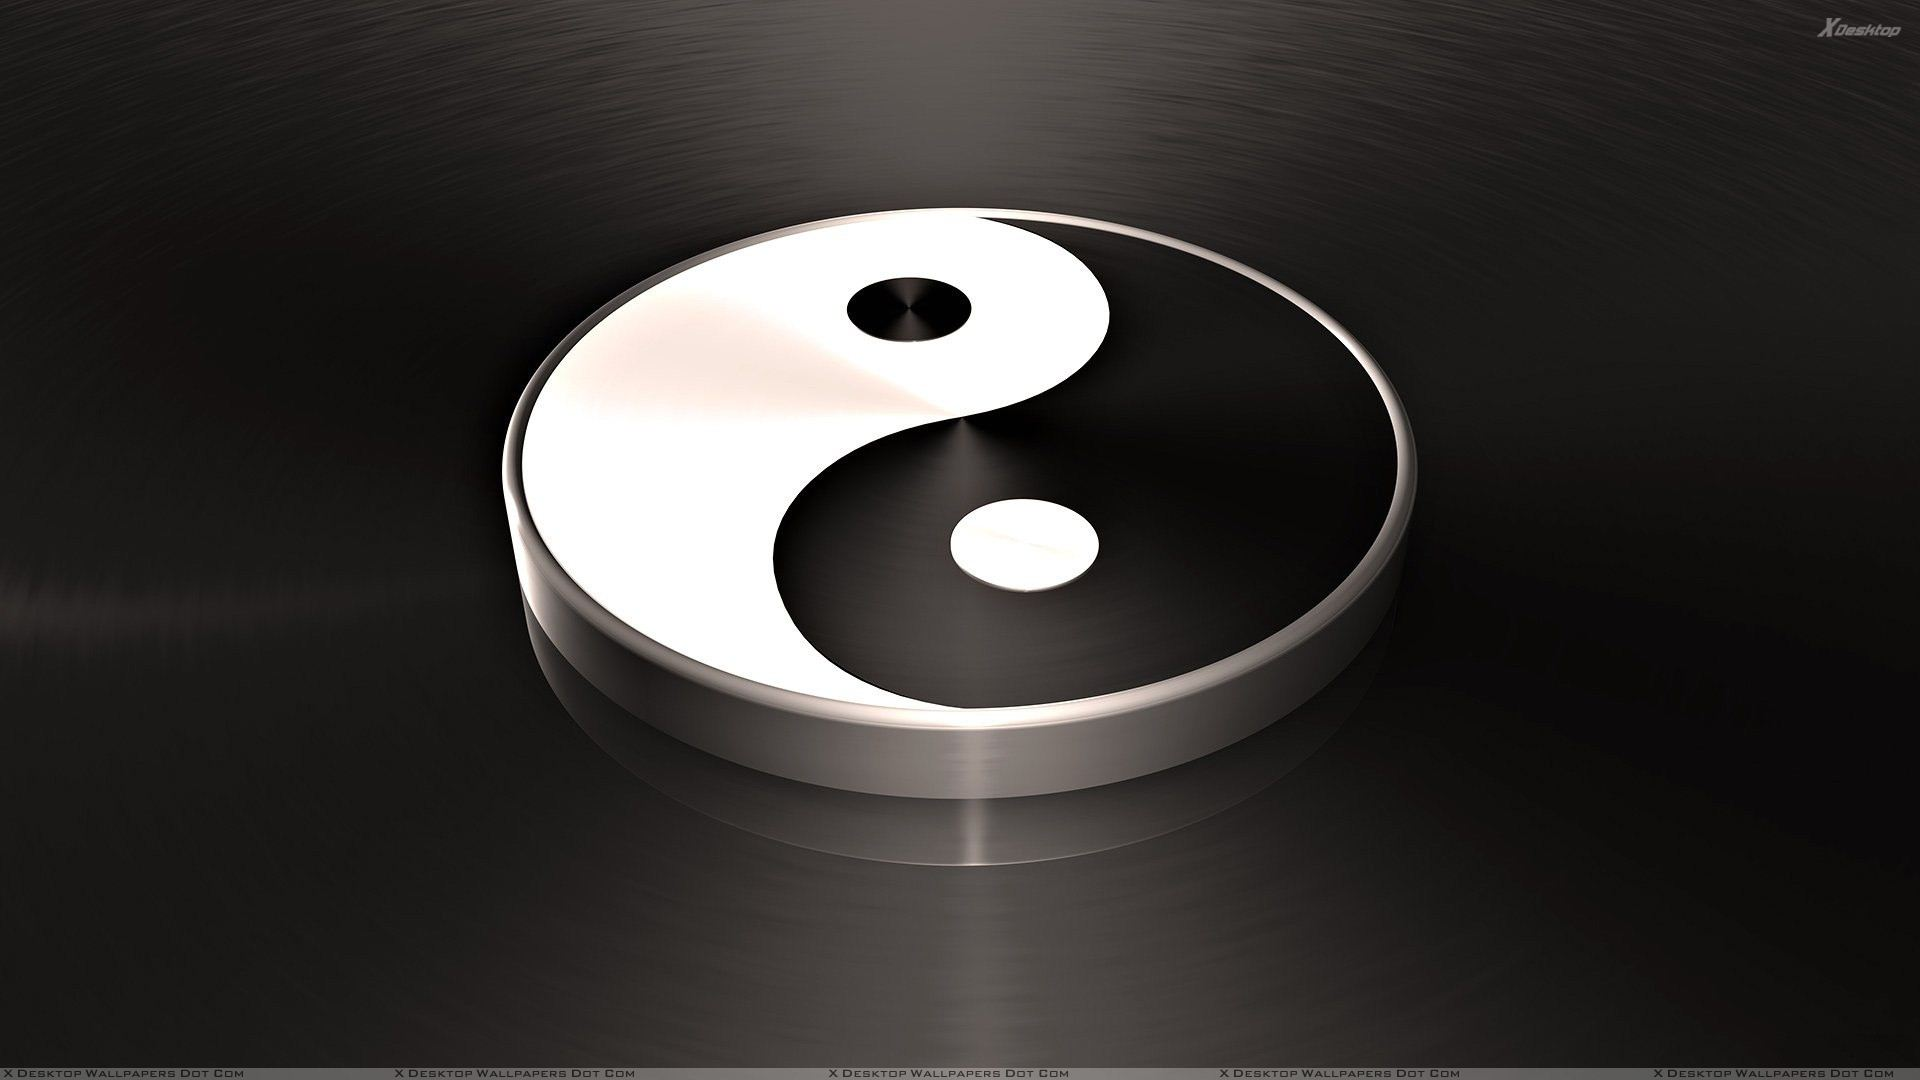 3d Yin Yang On Black Background Wallpaper